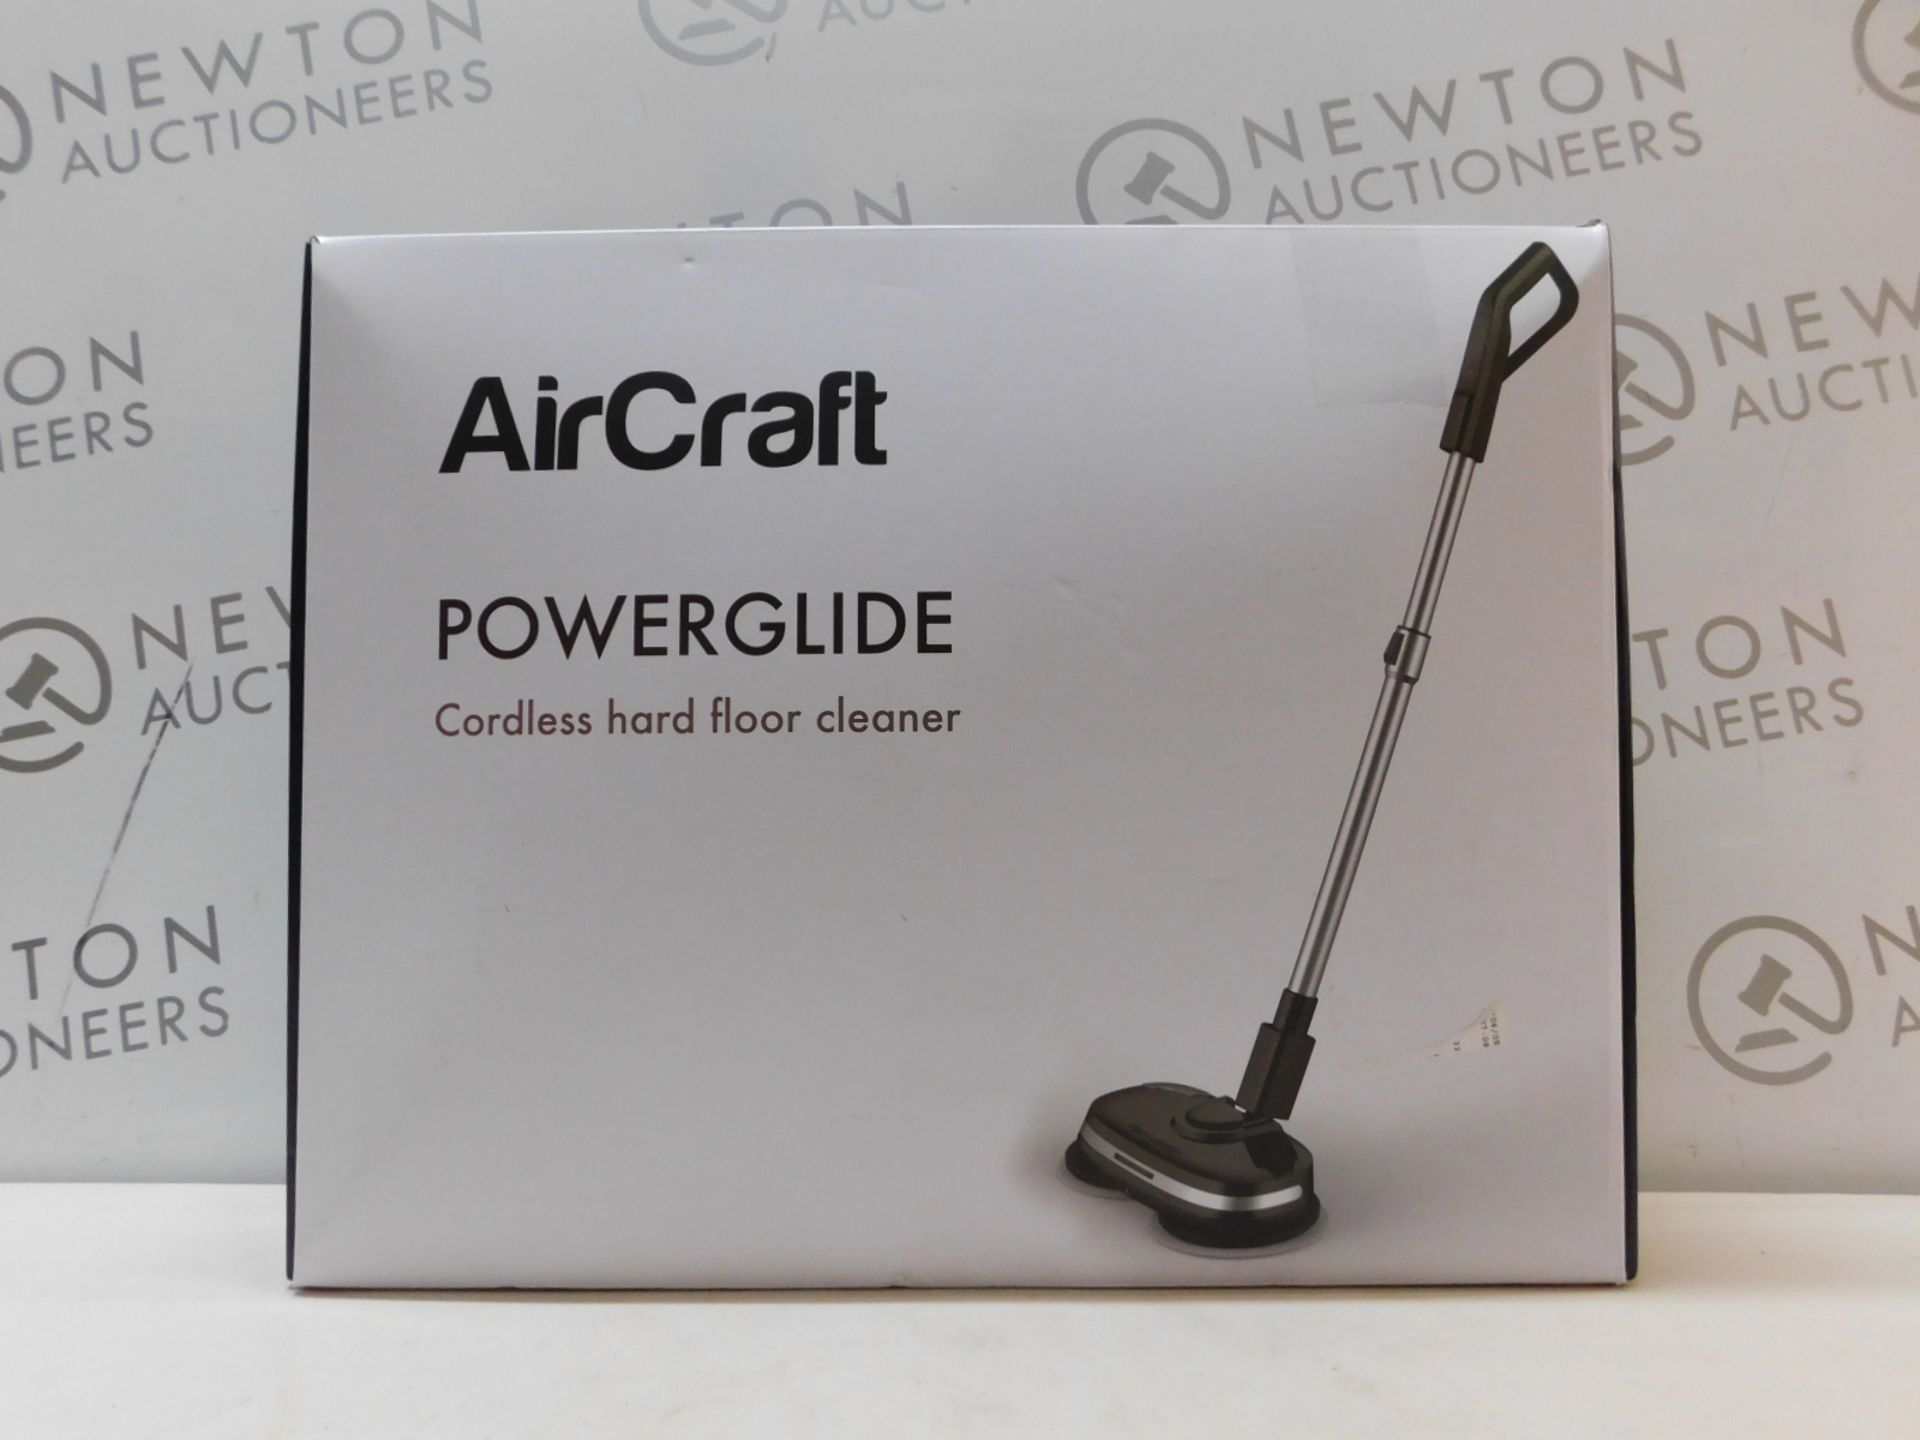 1 BOXED AIRCRAFT POWERGLIDE CORDLESS HARD FLOOR CLEANER & POLISHER RRP £199